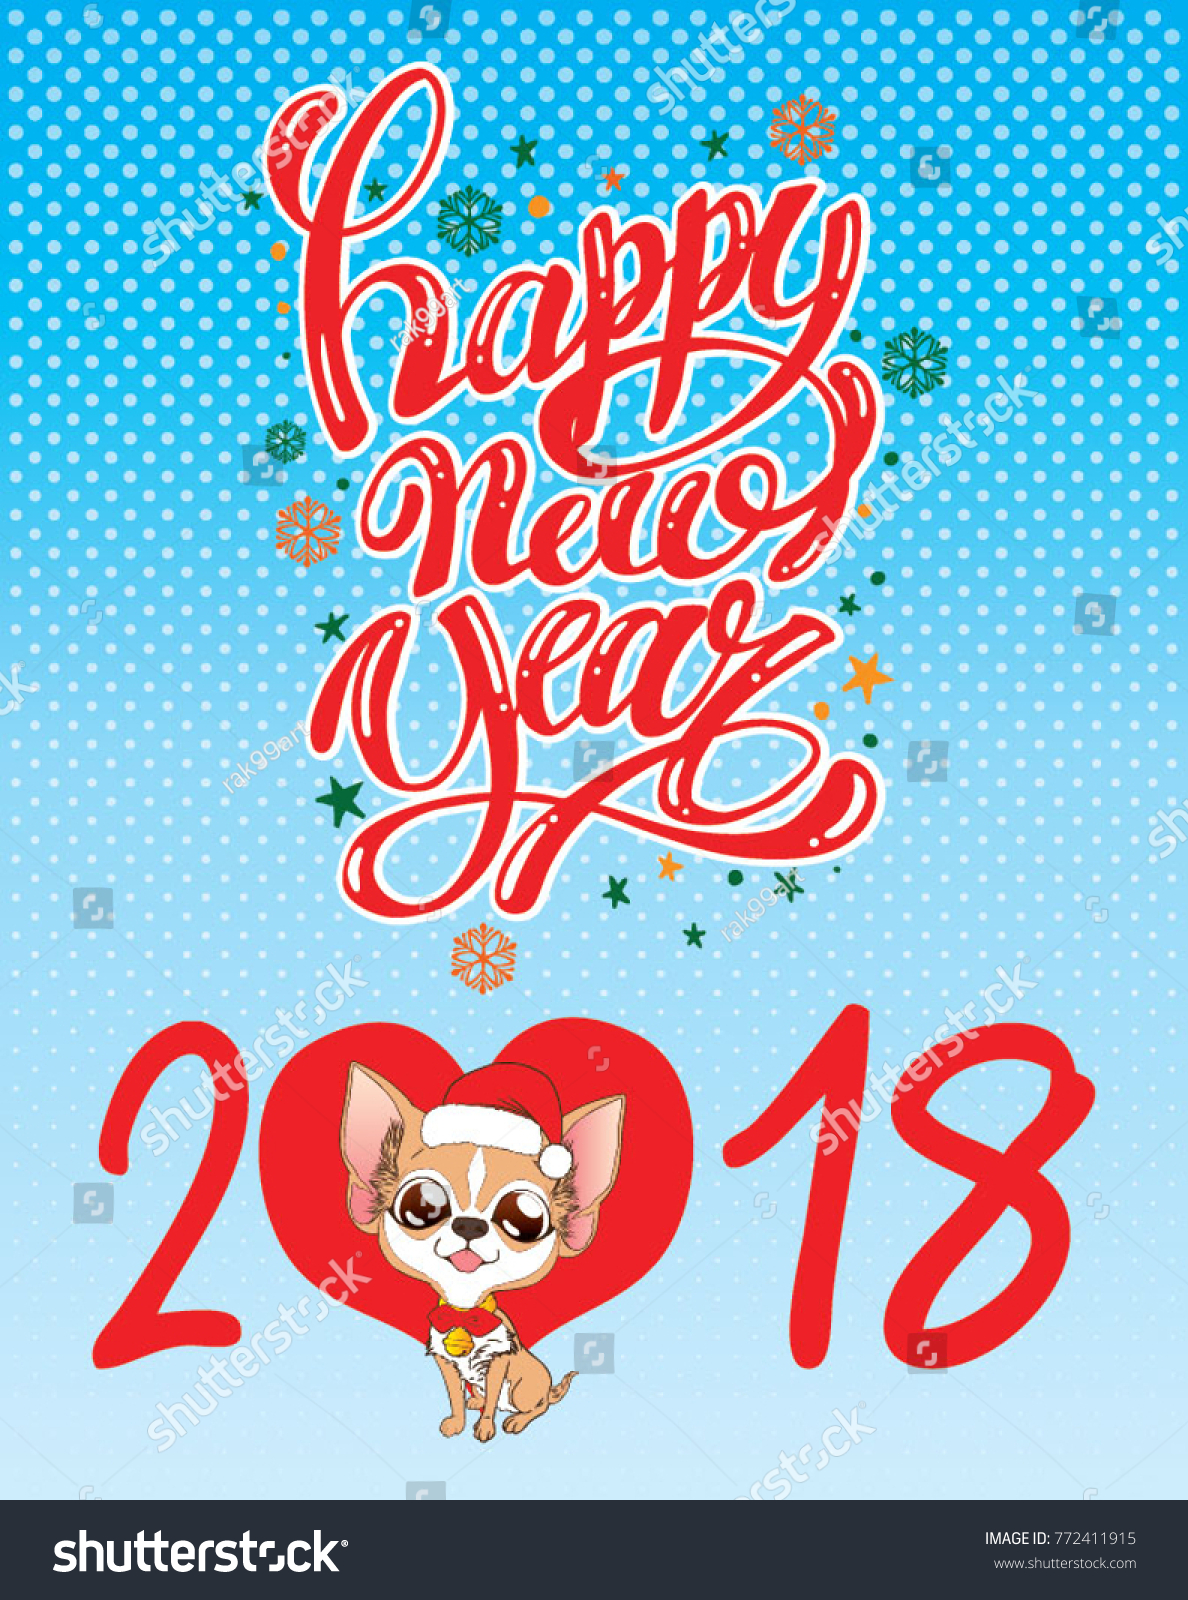 cute chihuahua sit happy new year greetings with light blue background